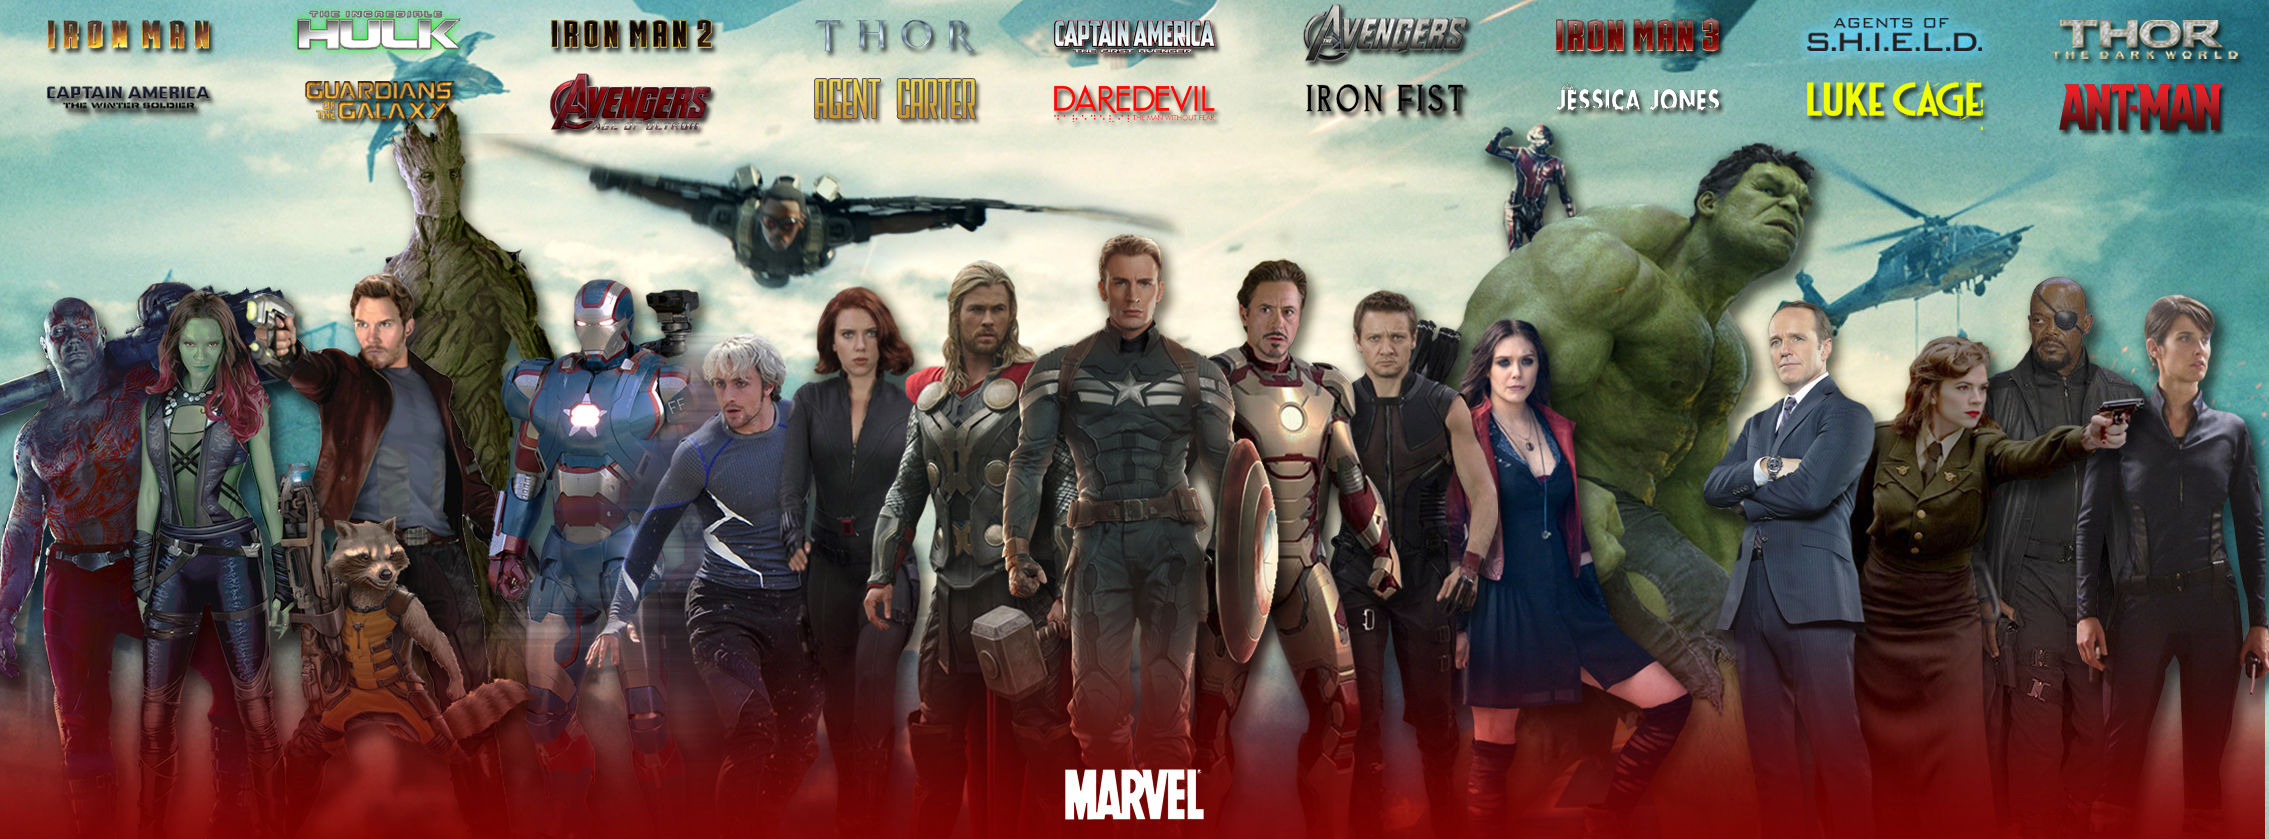 AMC to Offer Fans the Chance to Watch All Ten Films of the MCU Before Avengers: Age of Ultron